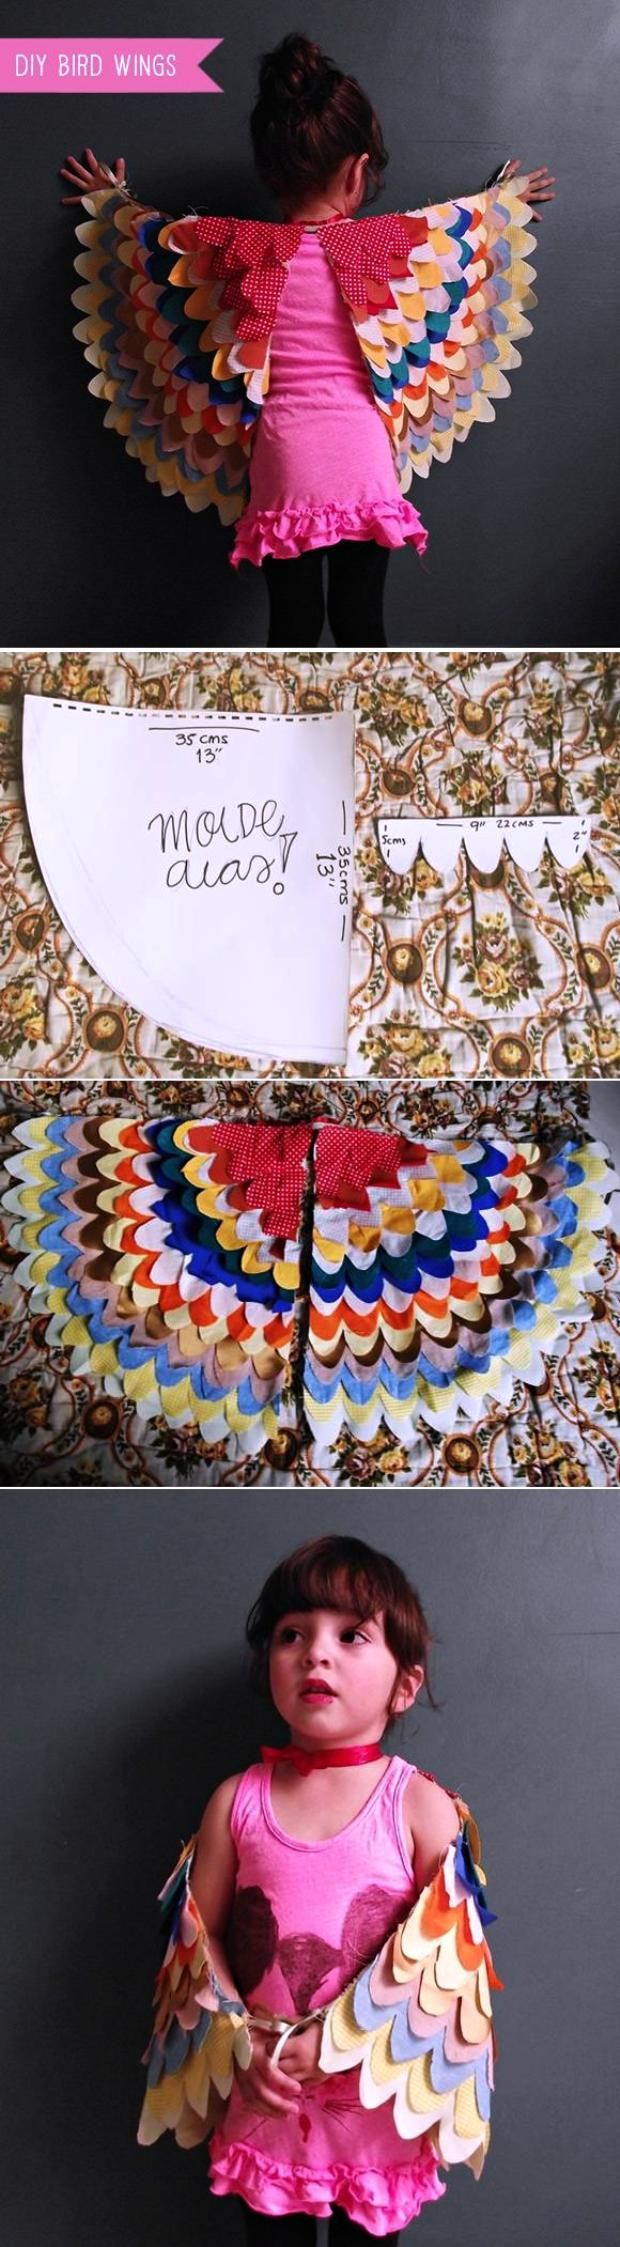 DIY Bird Wings Costume, but I don't like how it ties around the neck, needs to t...